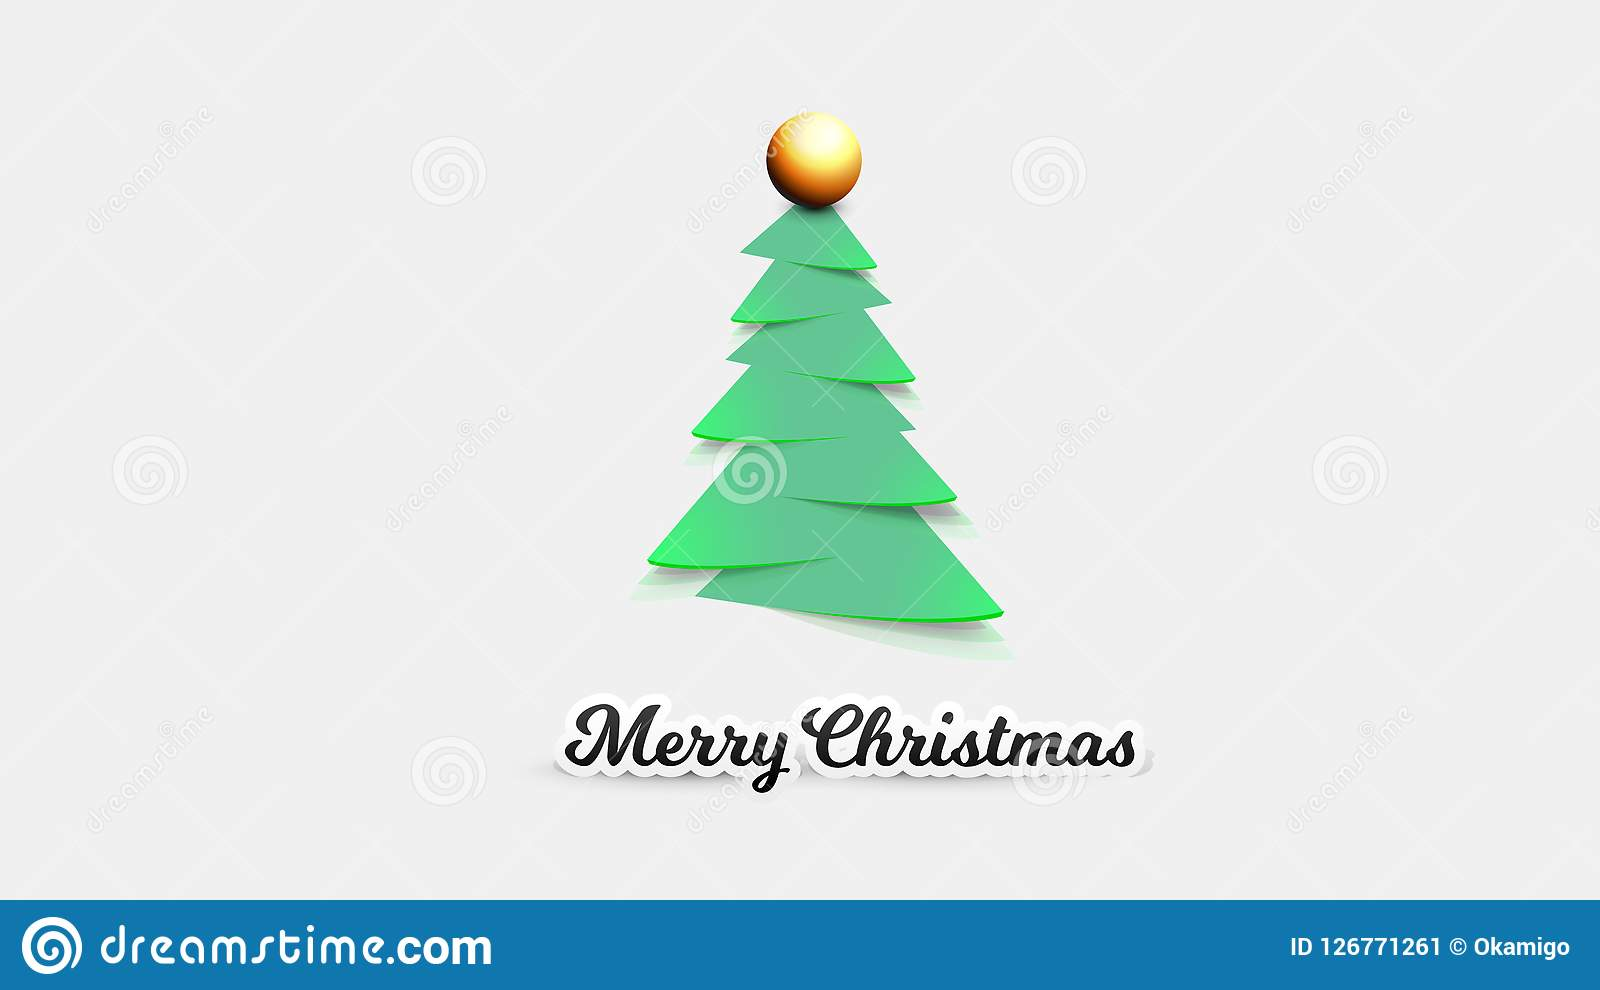 Realistic Paper Christmas Tree Vector Template For Xmas Gift Cards